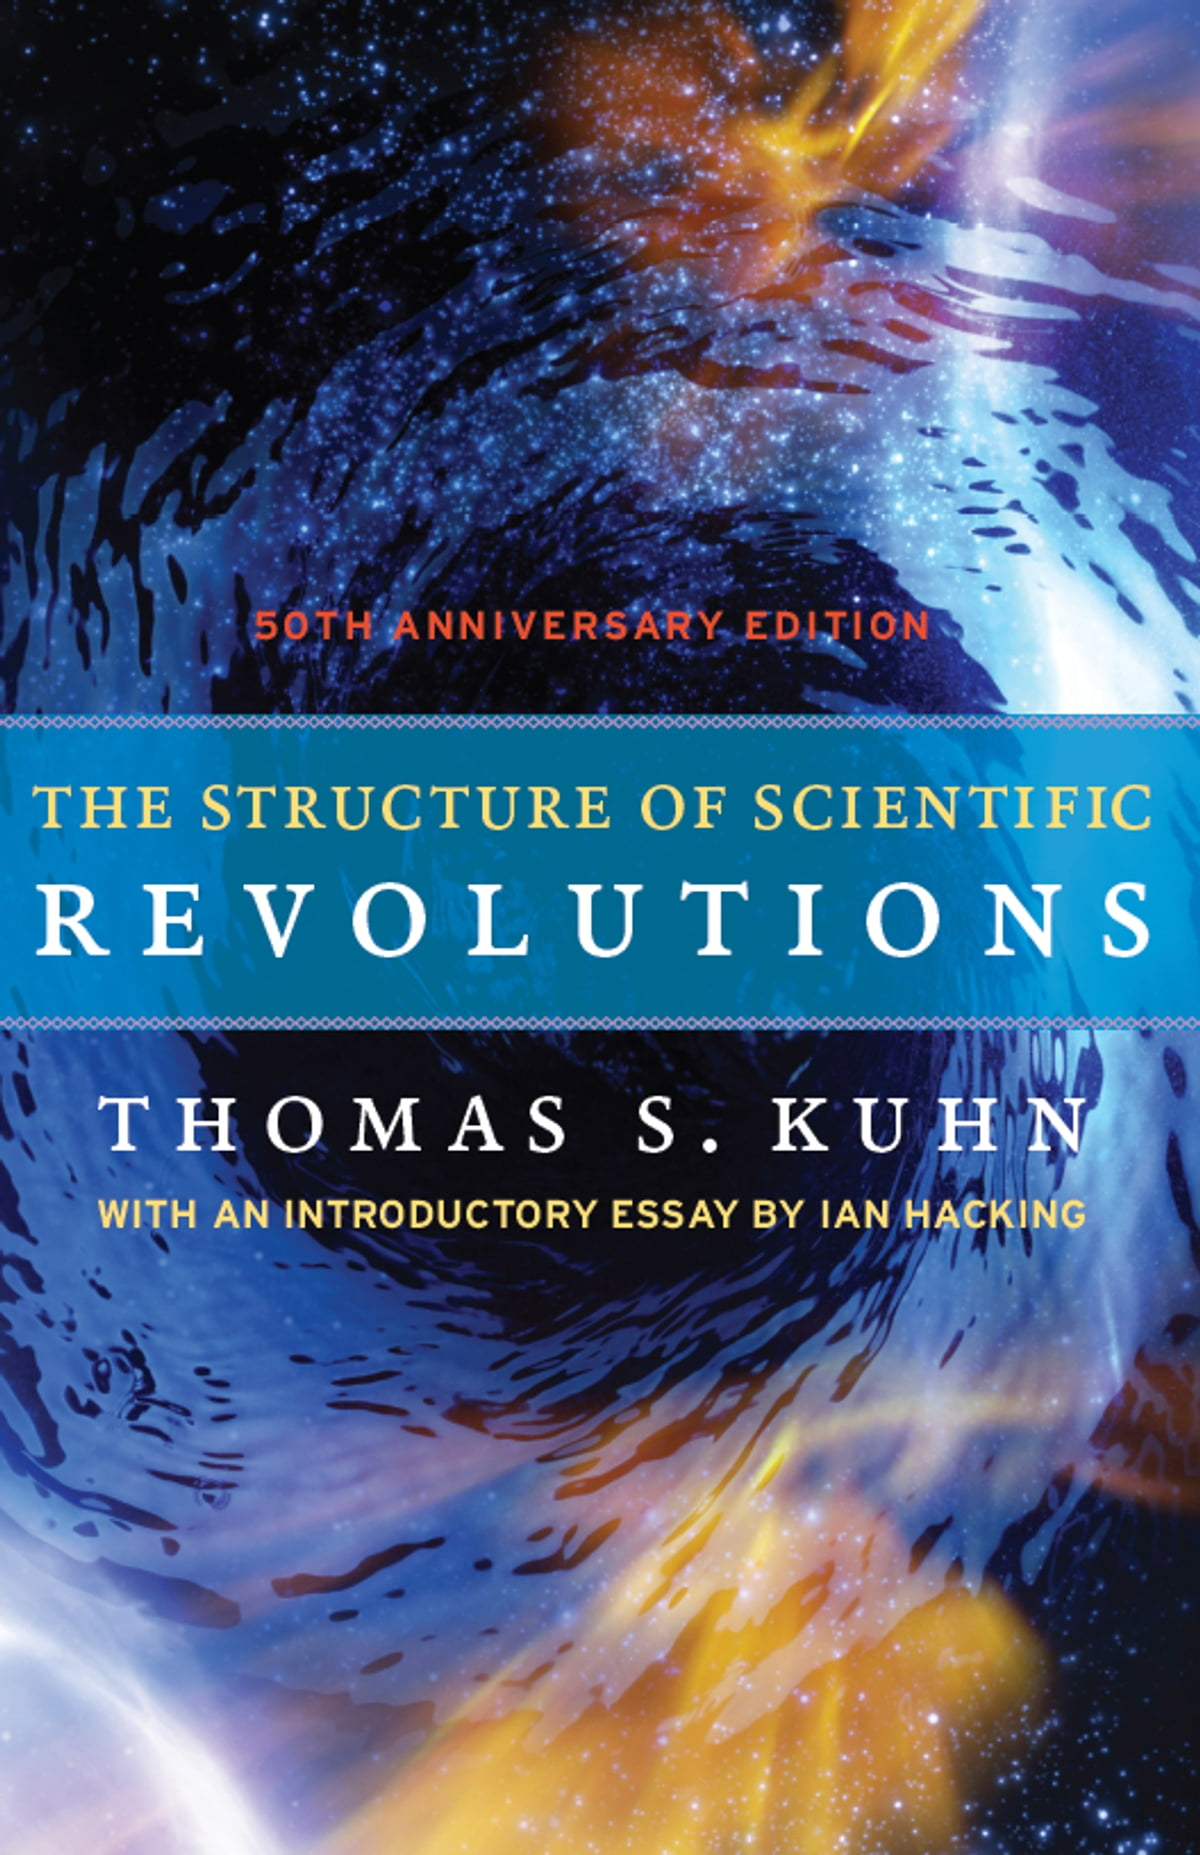 The Structure of Scientific Revolutions eBook by Thomas S. Kuhn ...